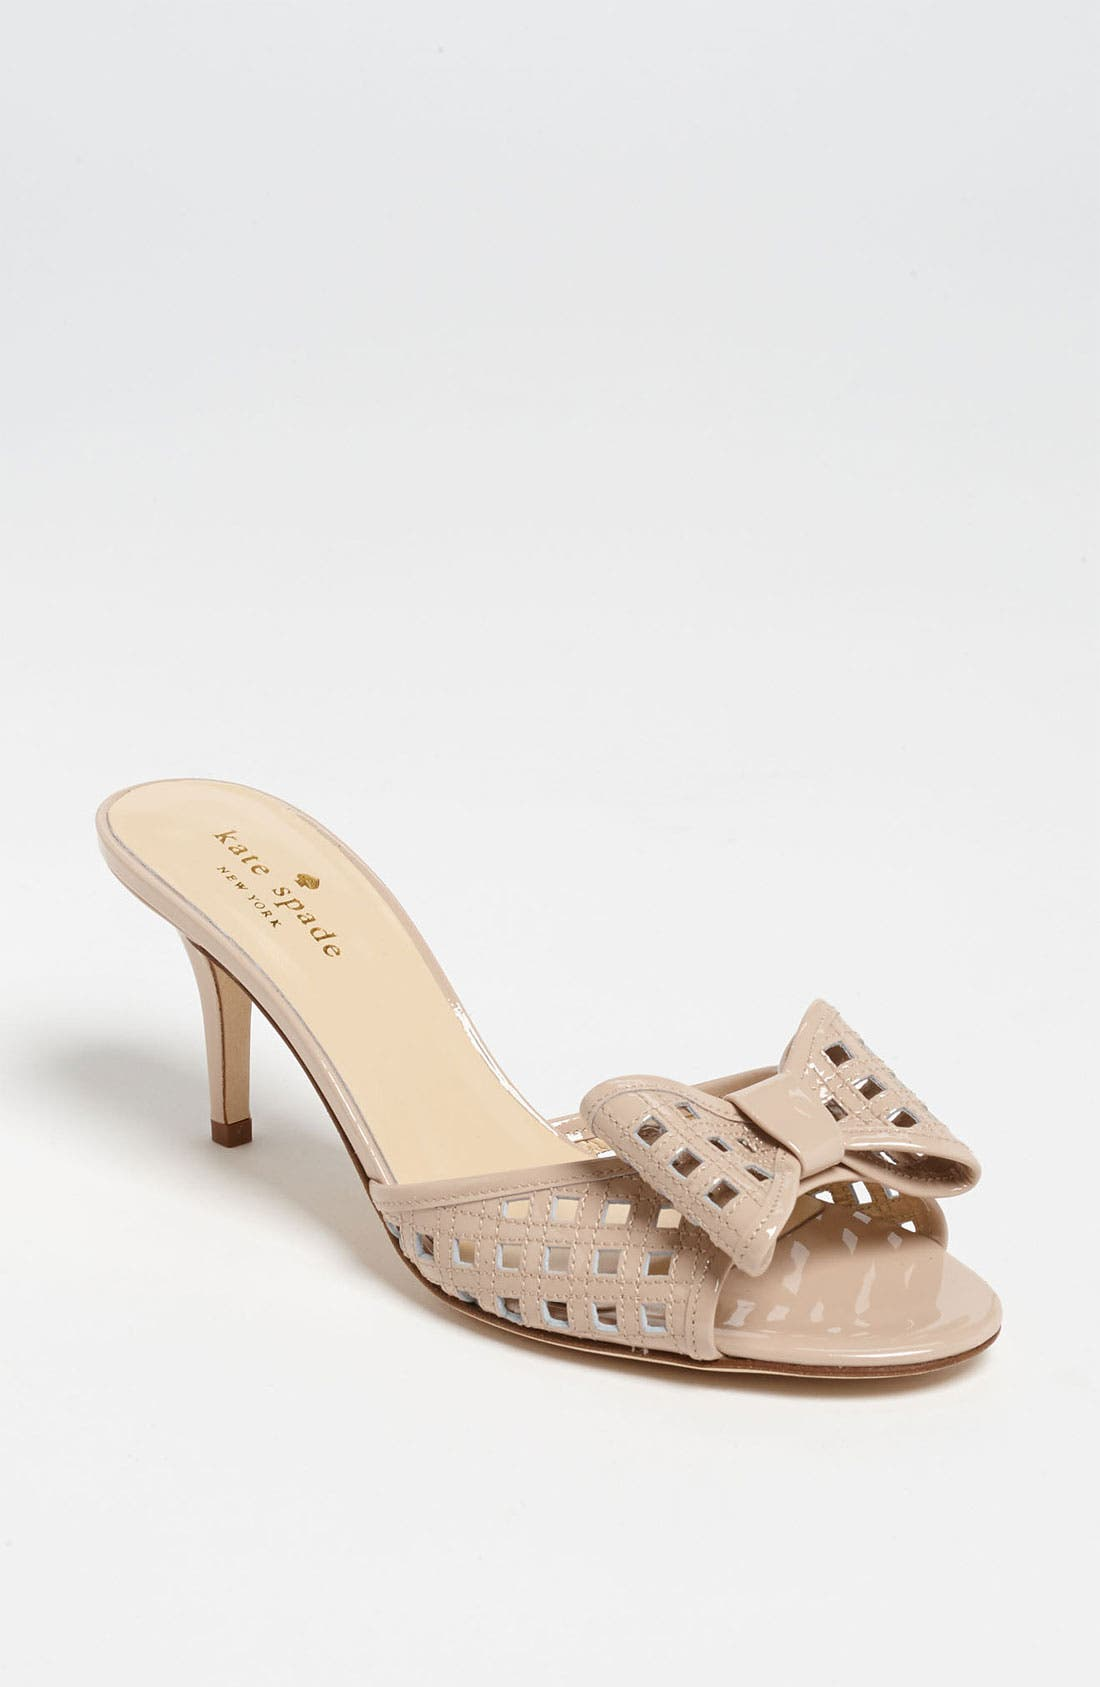 Main Image - kate spade new york 'mailyn' sandal